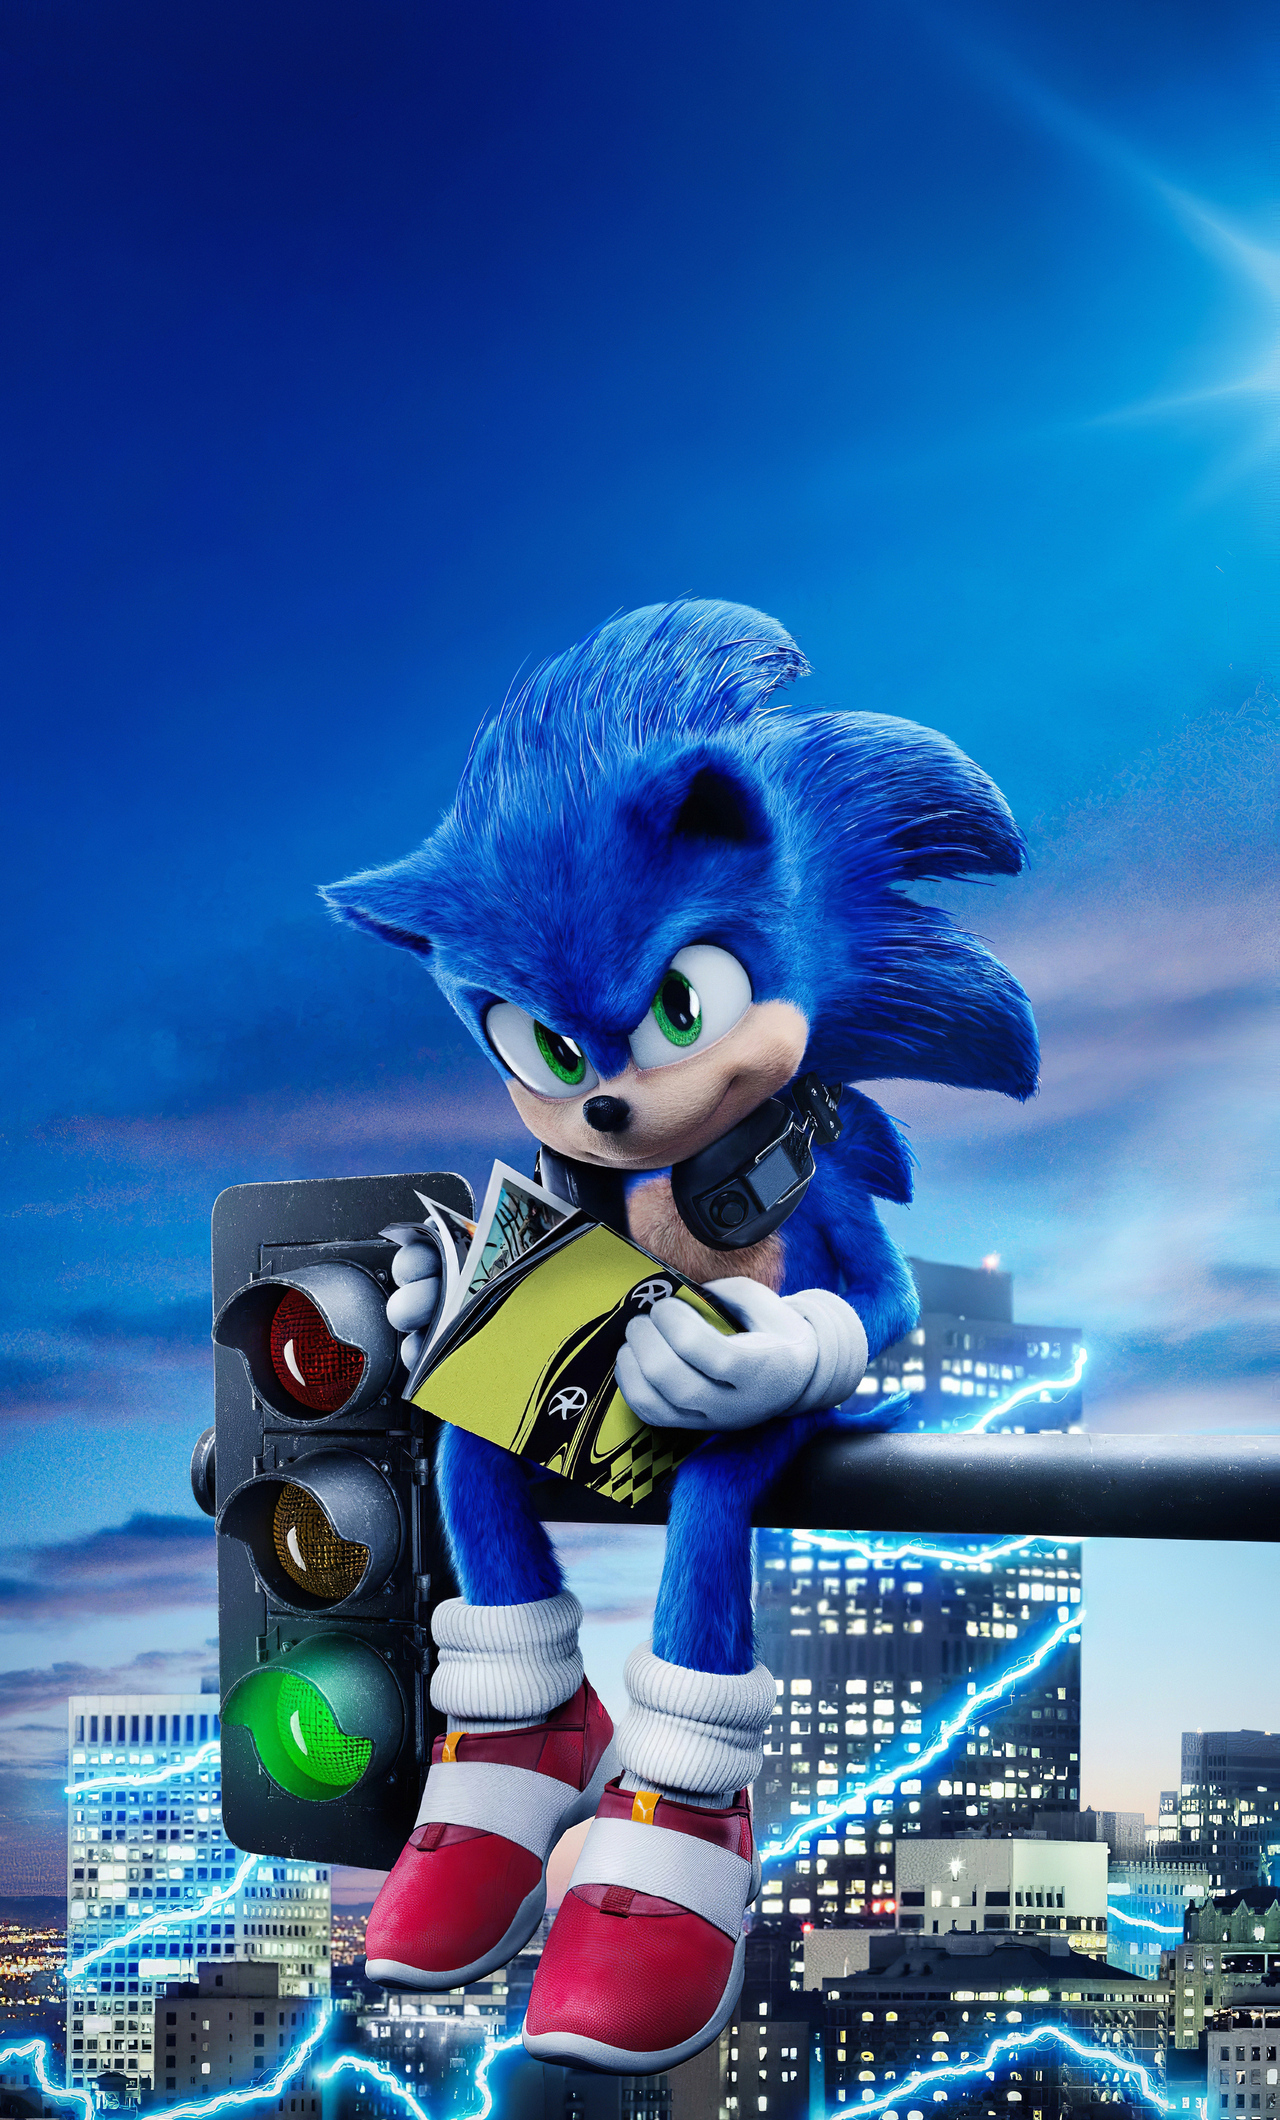 1280x2120 Sonic The Hedgehog 4k 2020 Movie Iphone 6 Hd 4k Wallpapers Images Backgrounds Photos And Pictures